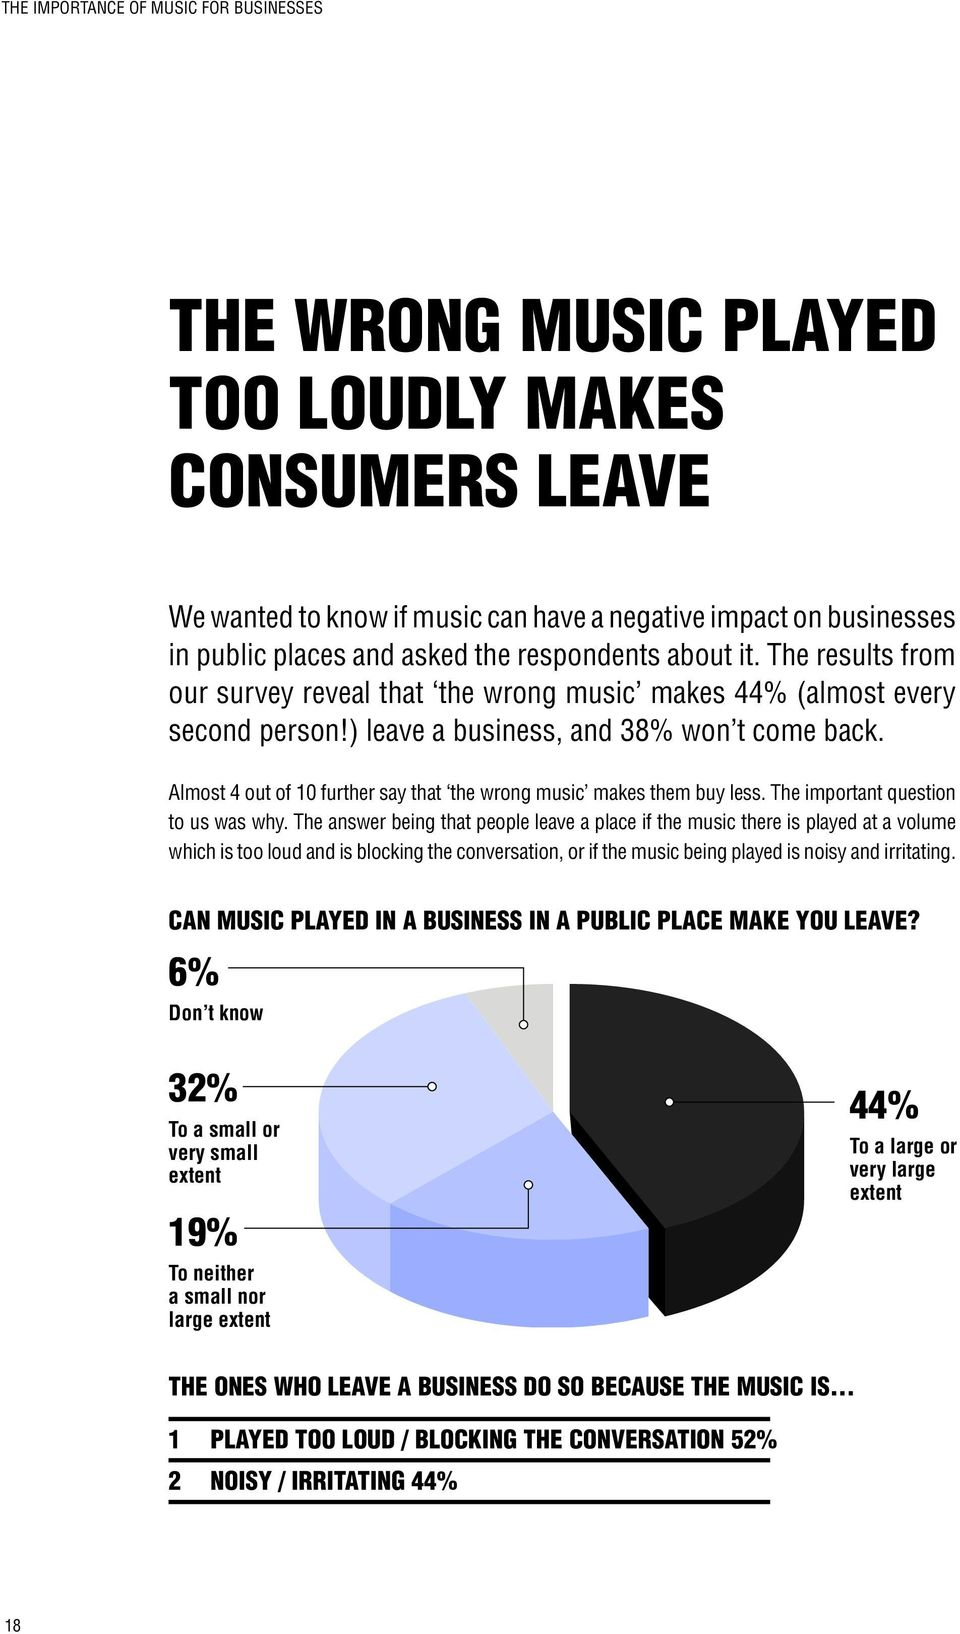 Almost 4 out of 10 further say that the wrong music makes them buy less. The important question to us was why.